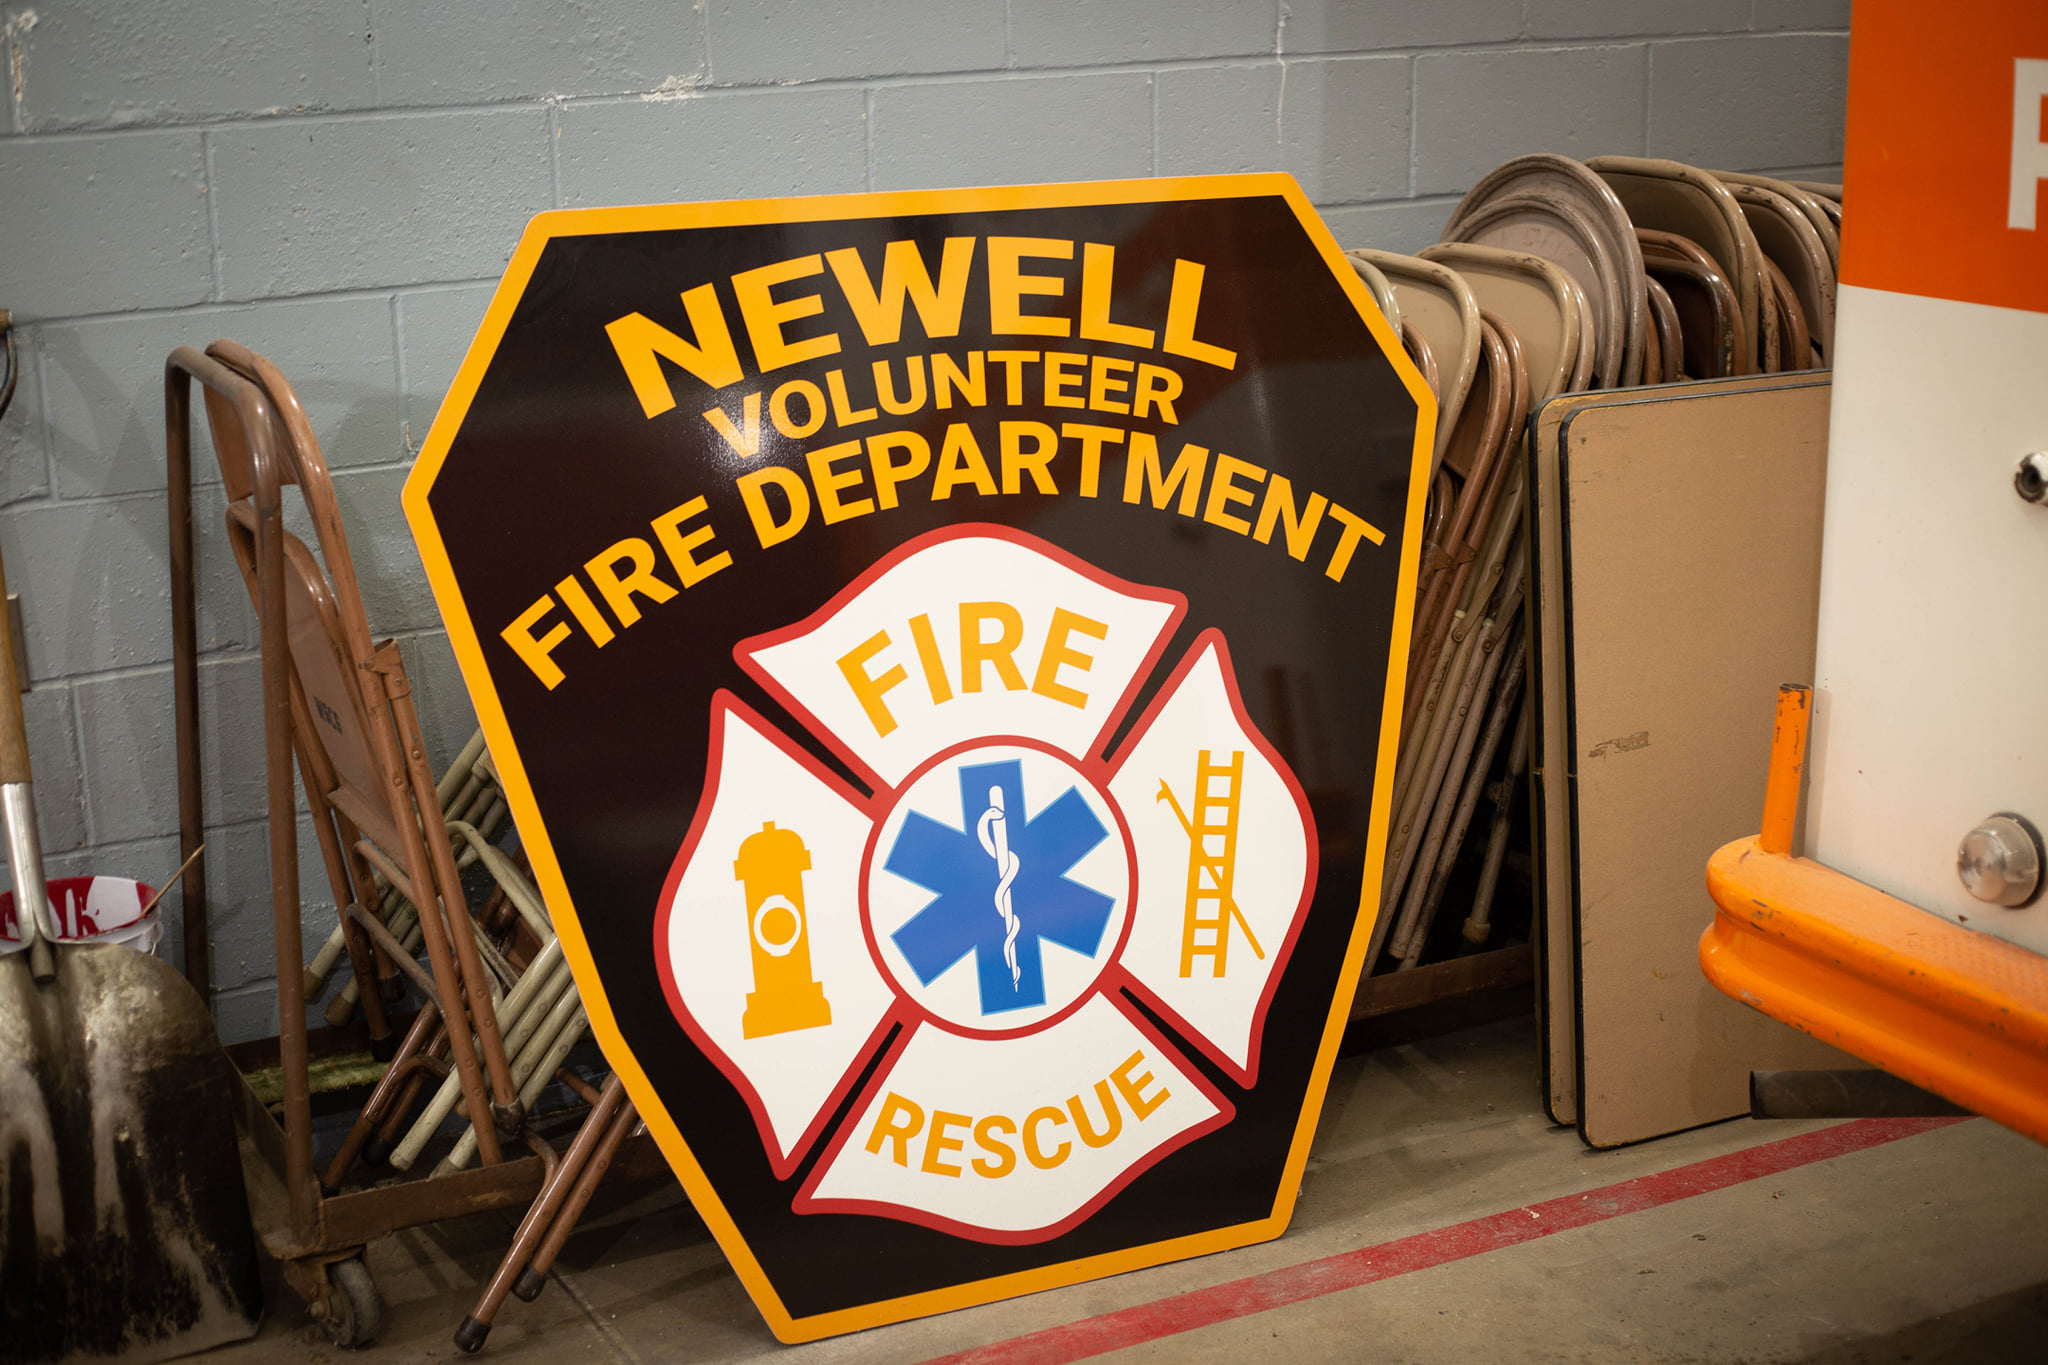 Newell FD and Rescue